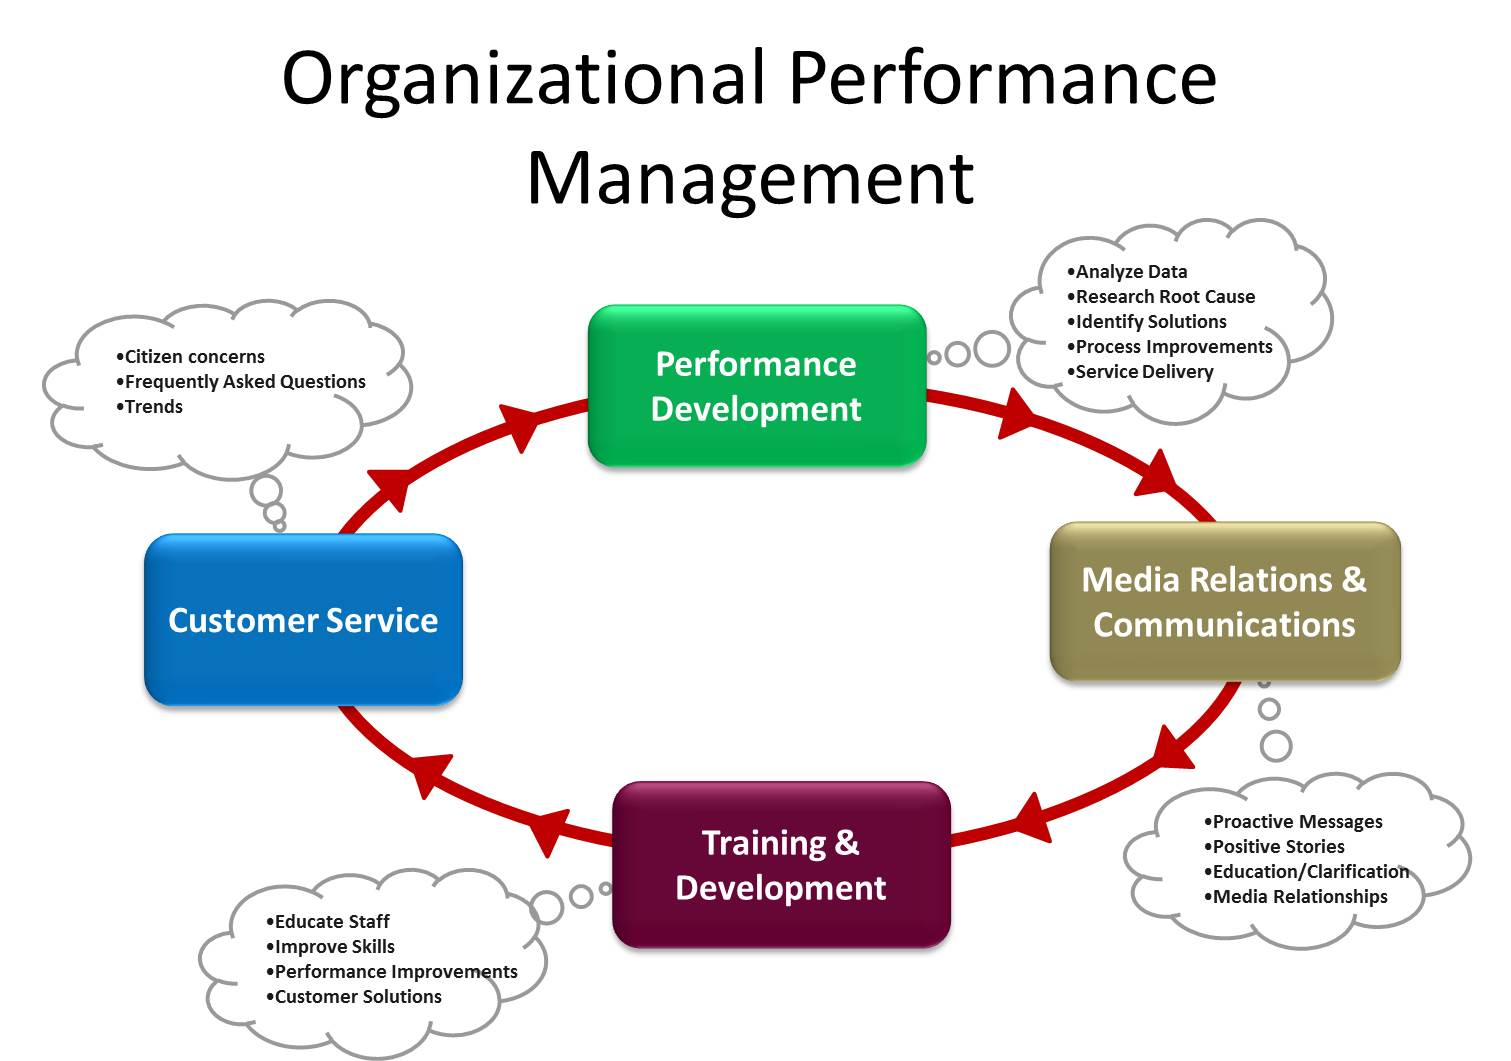 Organizational Performance Management (OPM) Structure